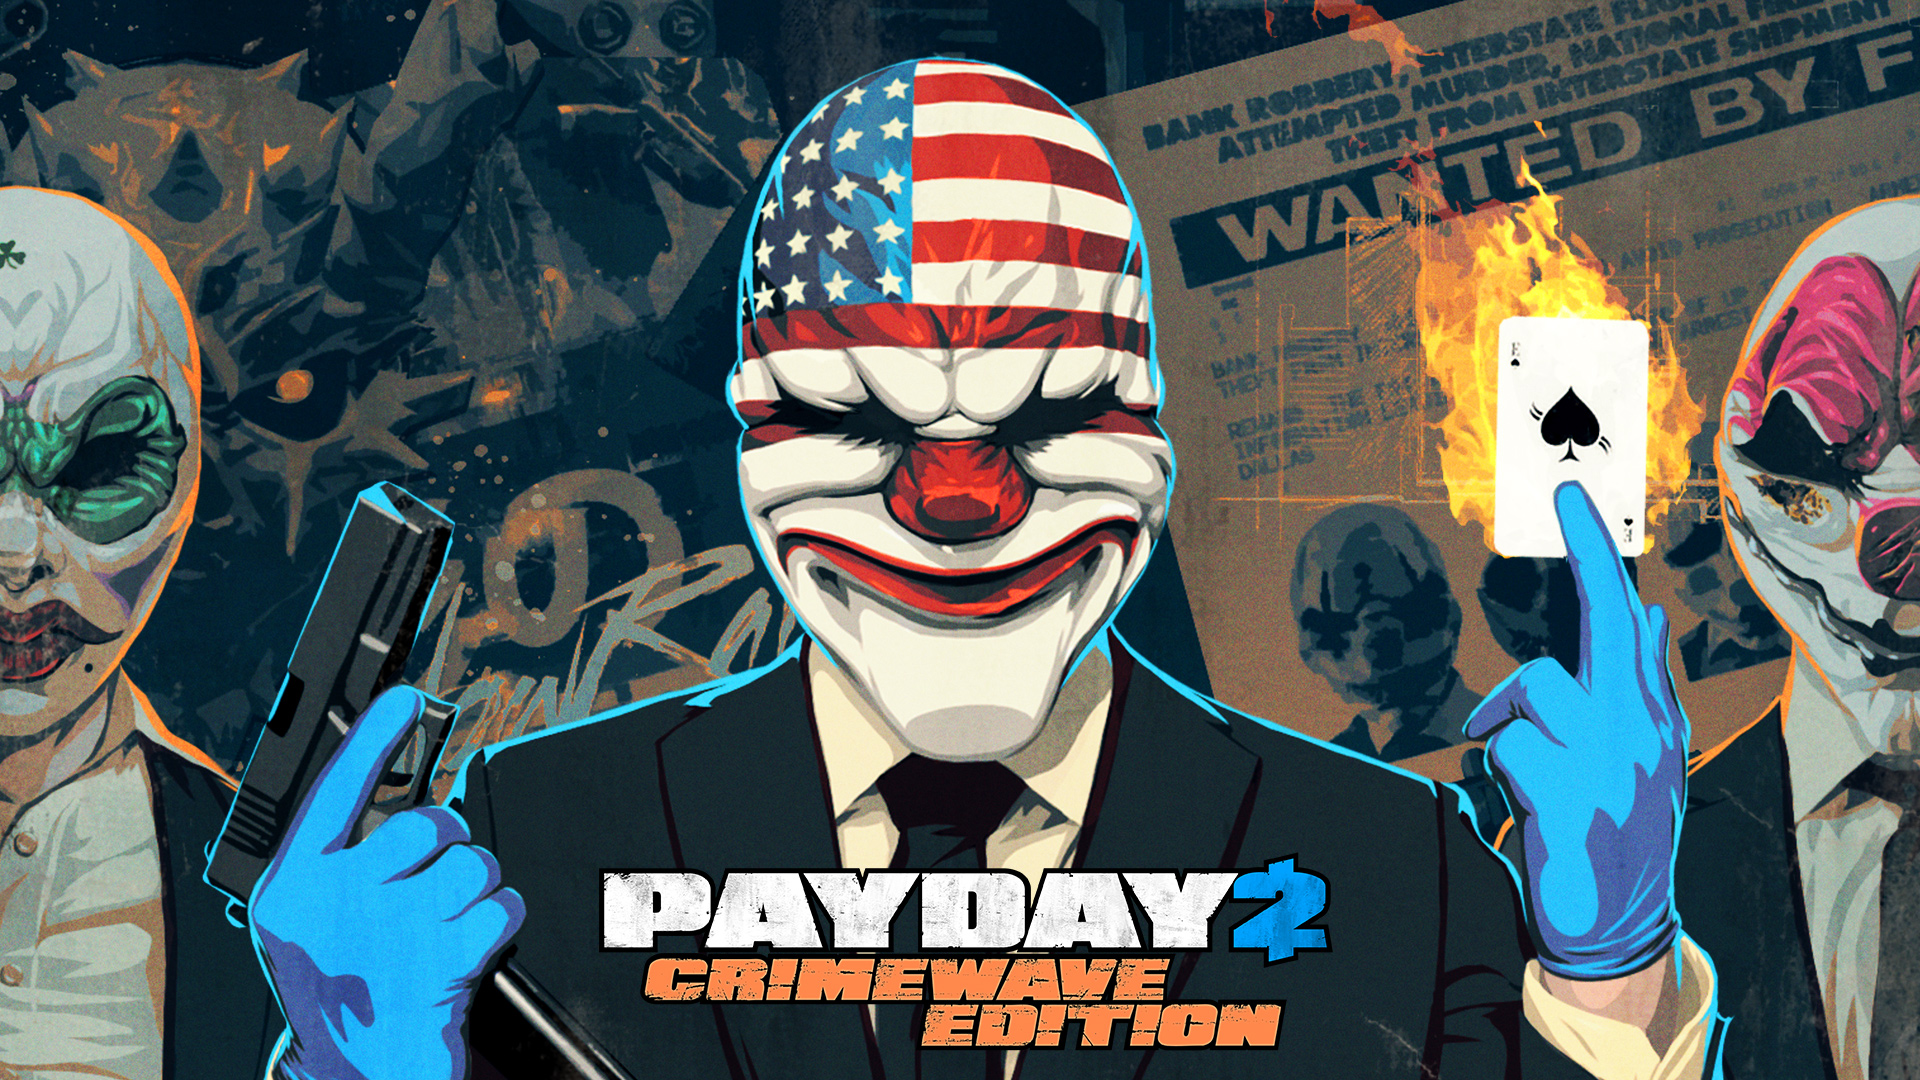 09b03b86ebb46b6e4ab53dda7e02ef65 payday 2 crimewave edition ������ � ���� �� playstation 4 � xbox one fuse box payday 2 at gsmx.co